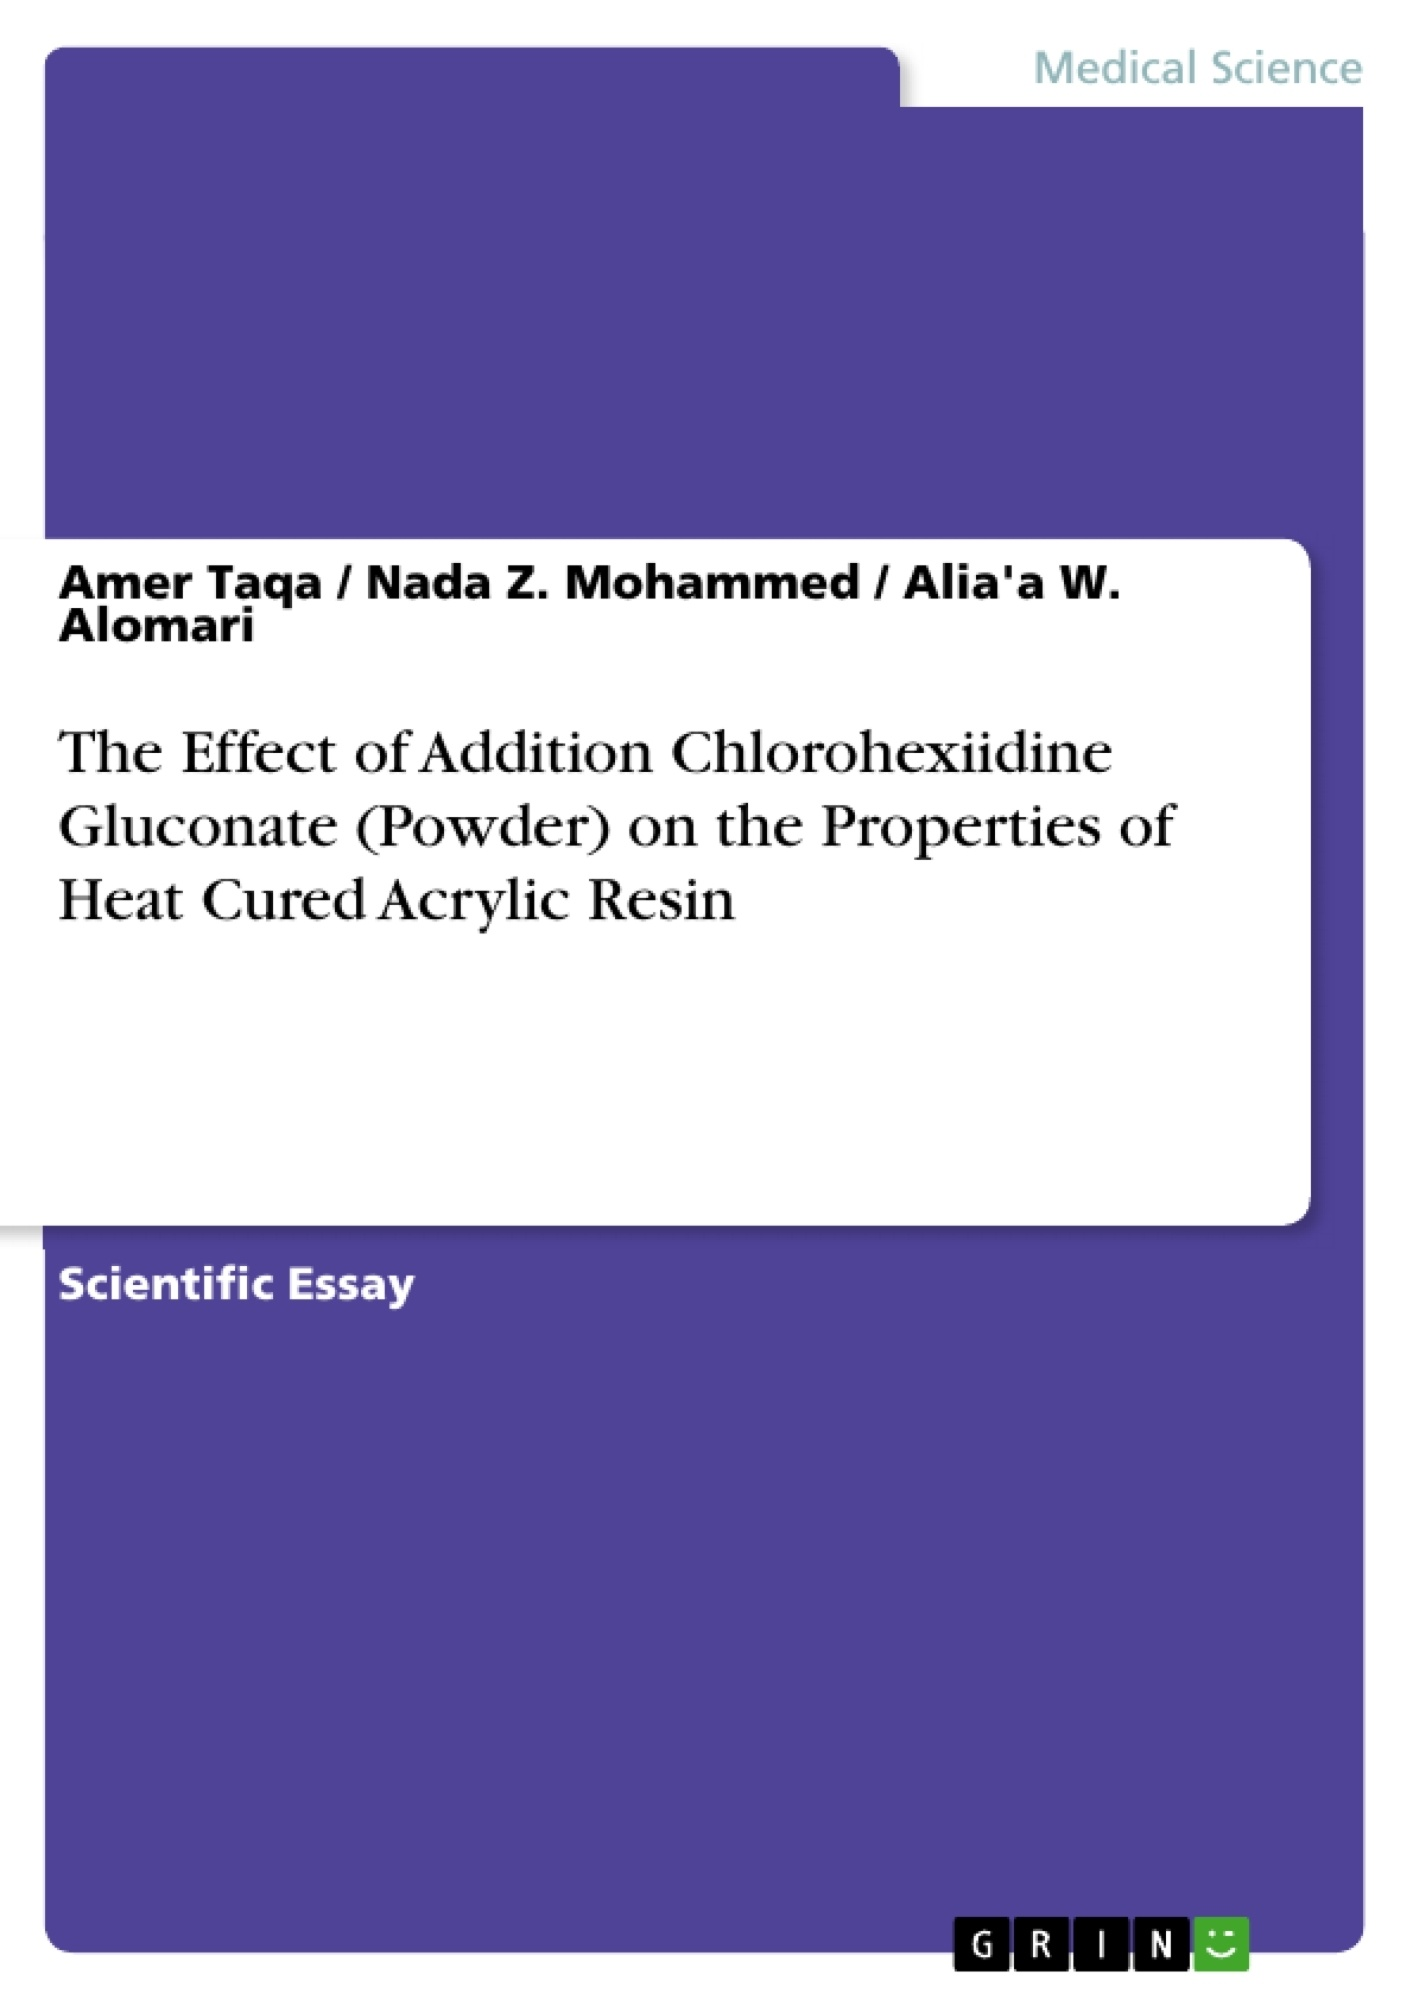 Title: The Effect of Addition Chlorohexiidine Gluconate (Powder) on the Properties of Heat Cured Acrylic Resin